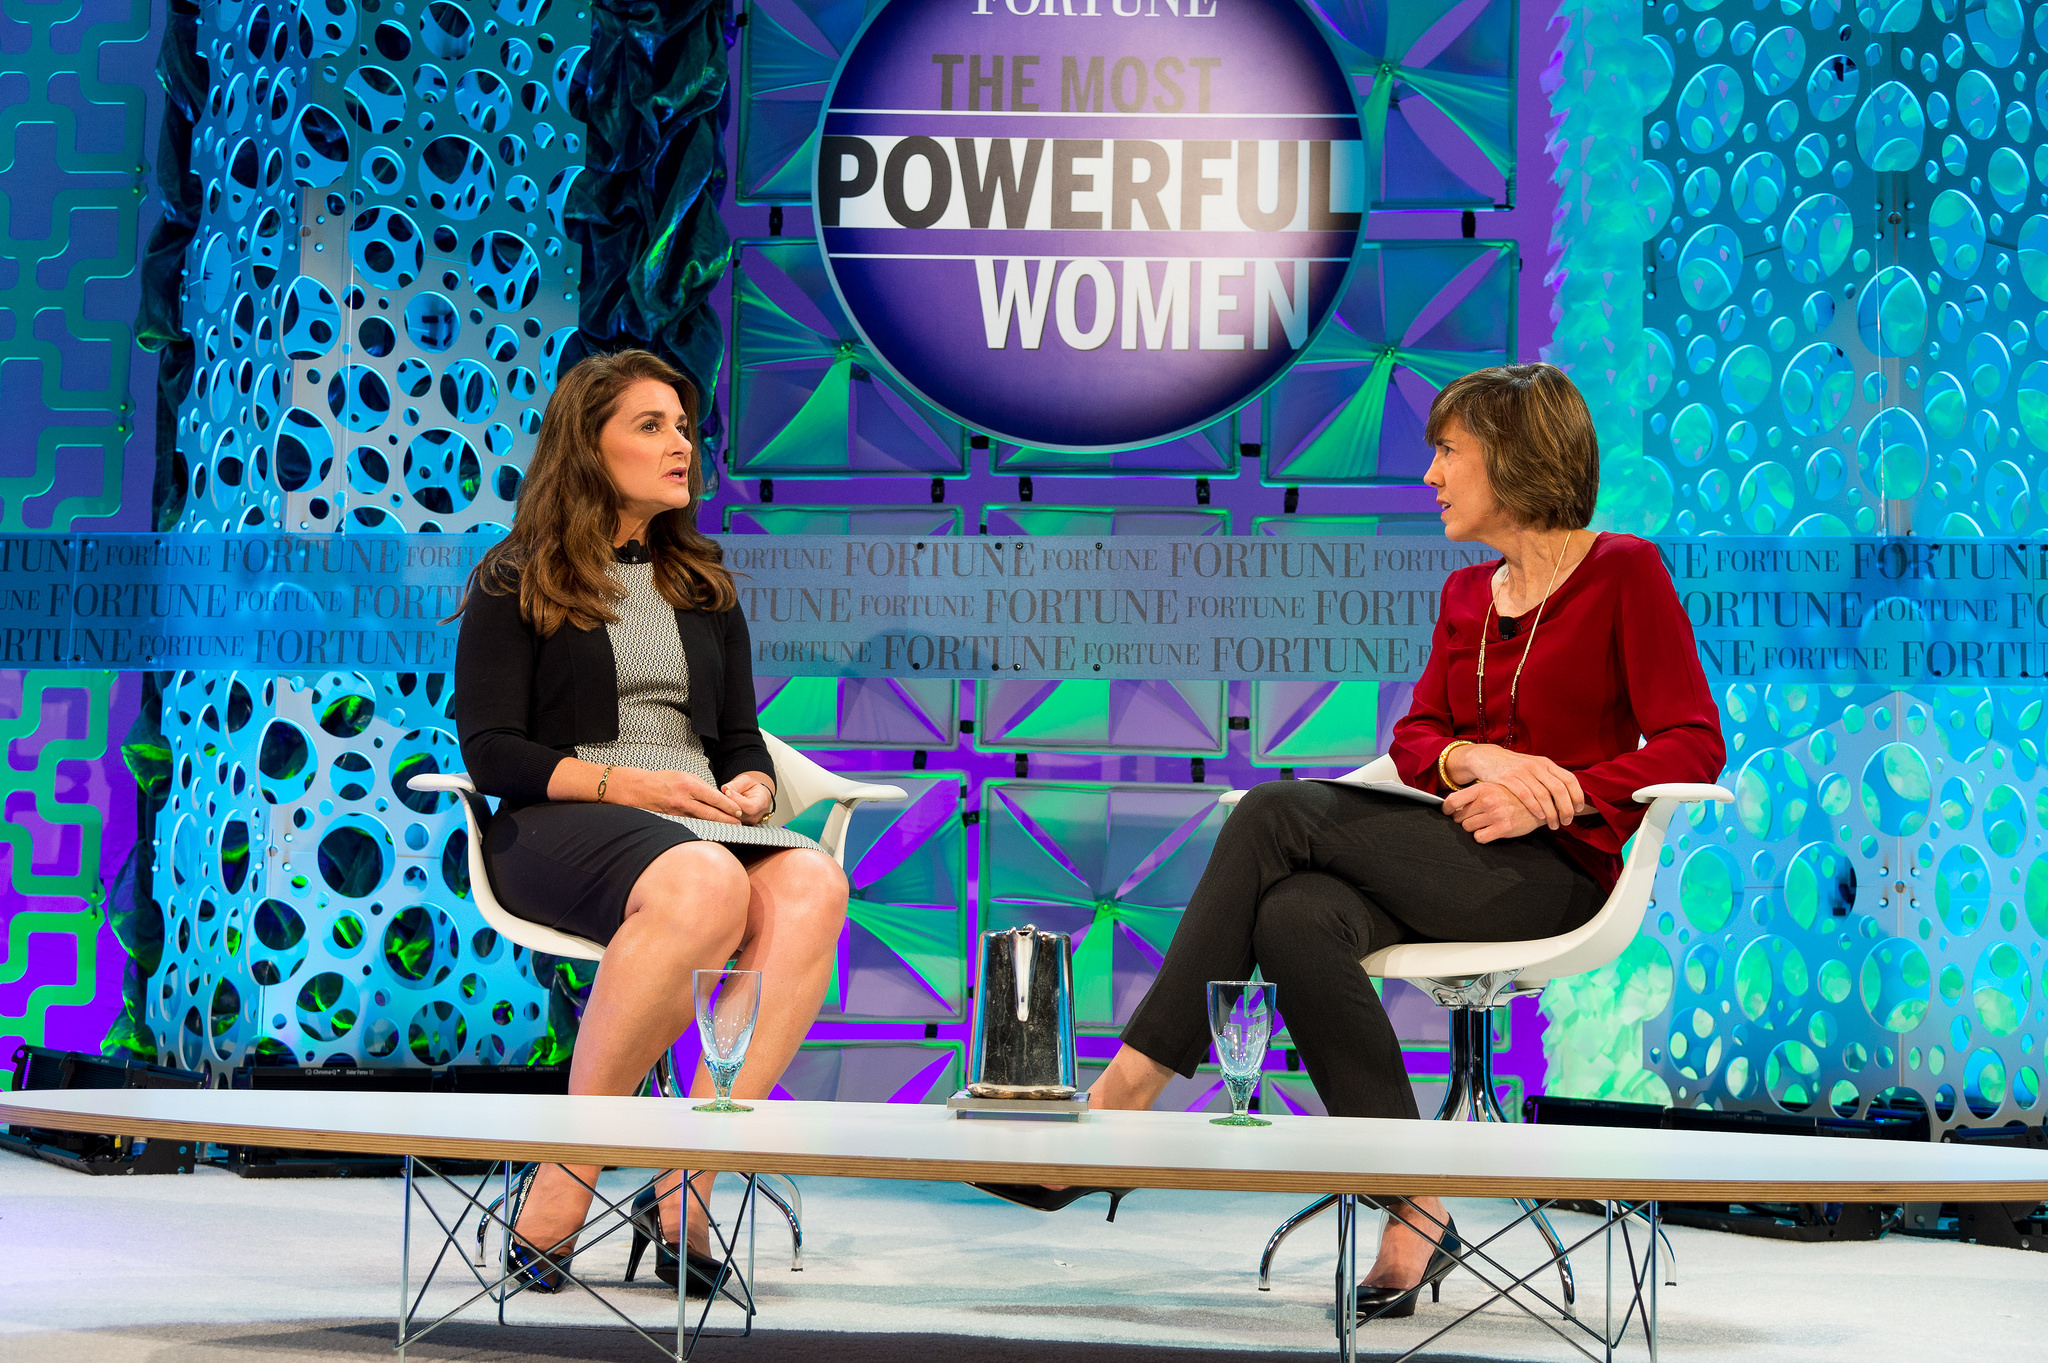 Melinda Gates and Pattie Sellers